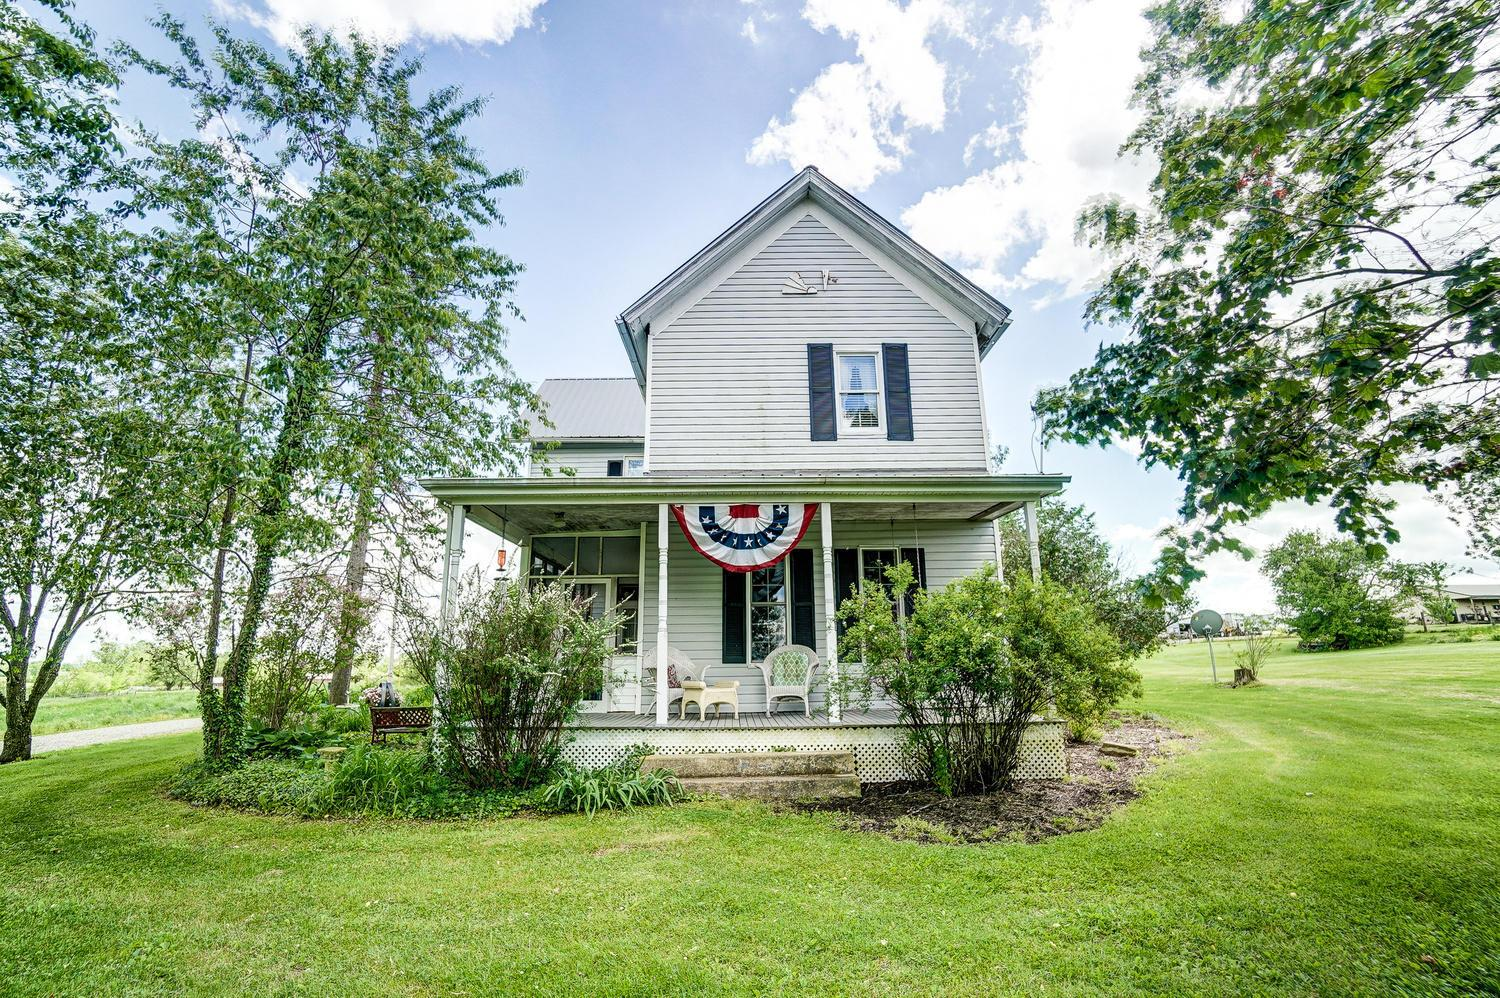 12677 State Route 56, Circleville, Ohio 43113, 3 Bedrooms Bedrooms, ,3 BathroomsBathrooms,Residential,For Sale,State Route 56,220016975